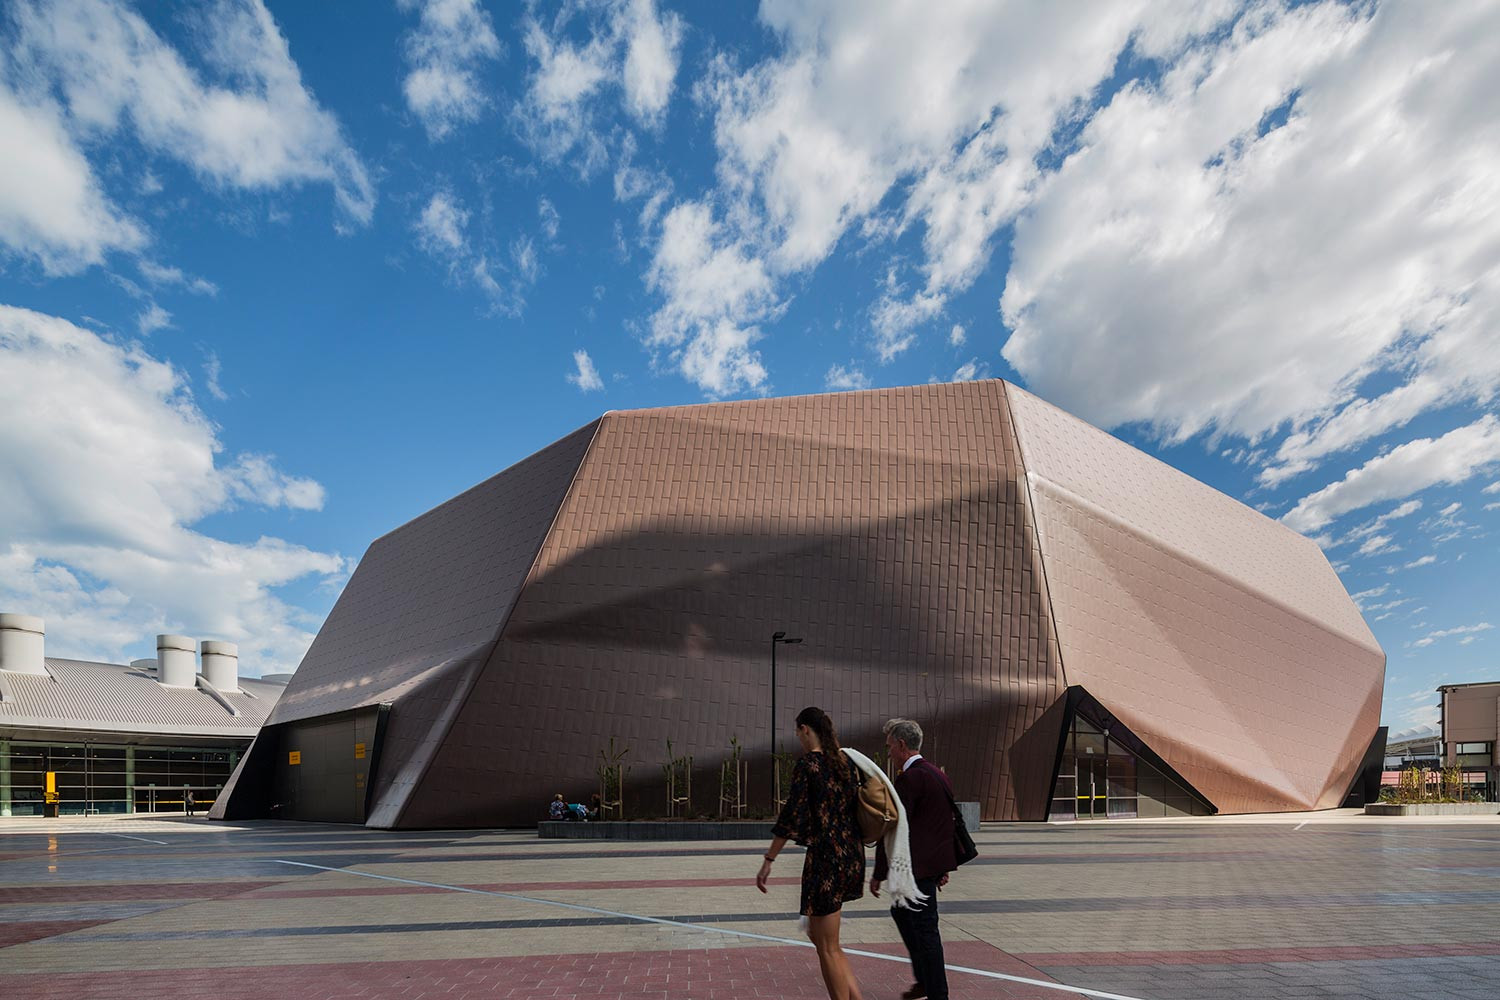 Adelaide Convention Centre Redevelopment: East Building by Woods Bagot. Photo by Trevor Mein.